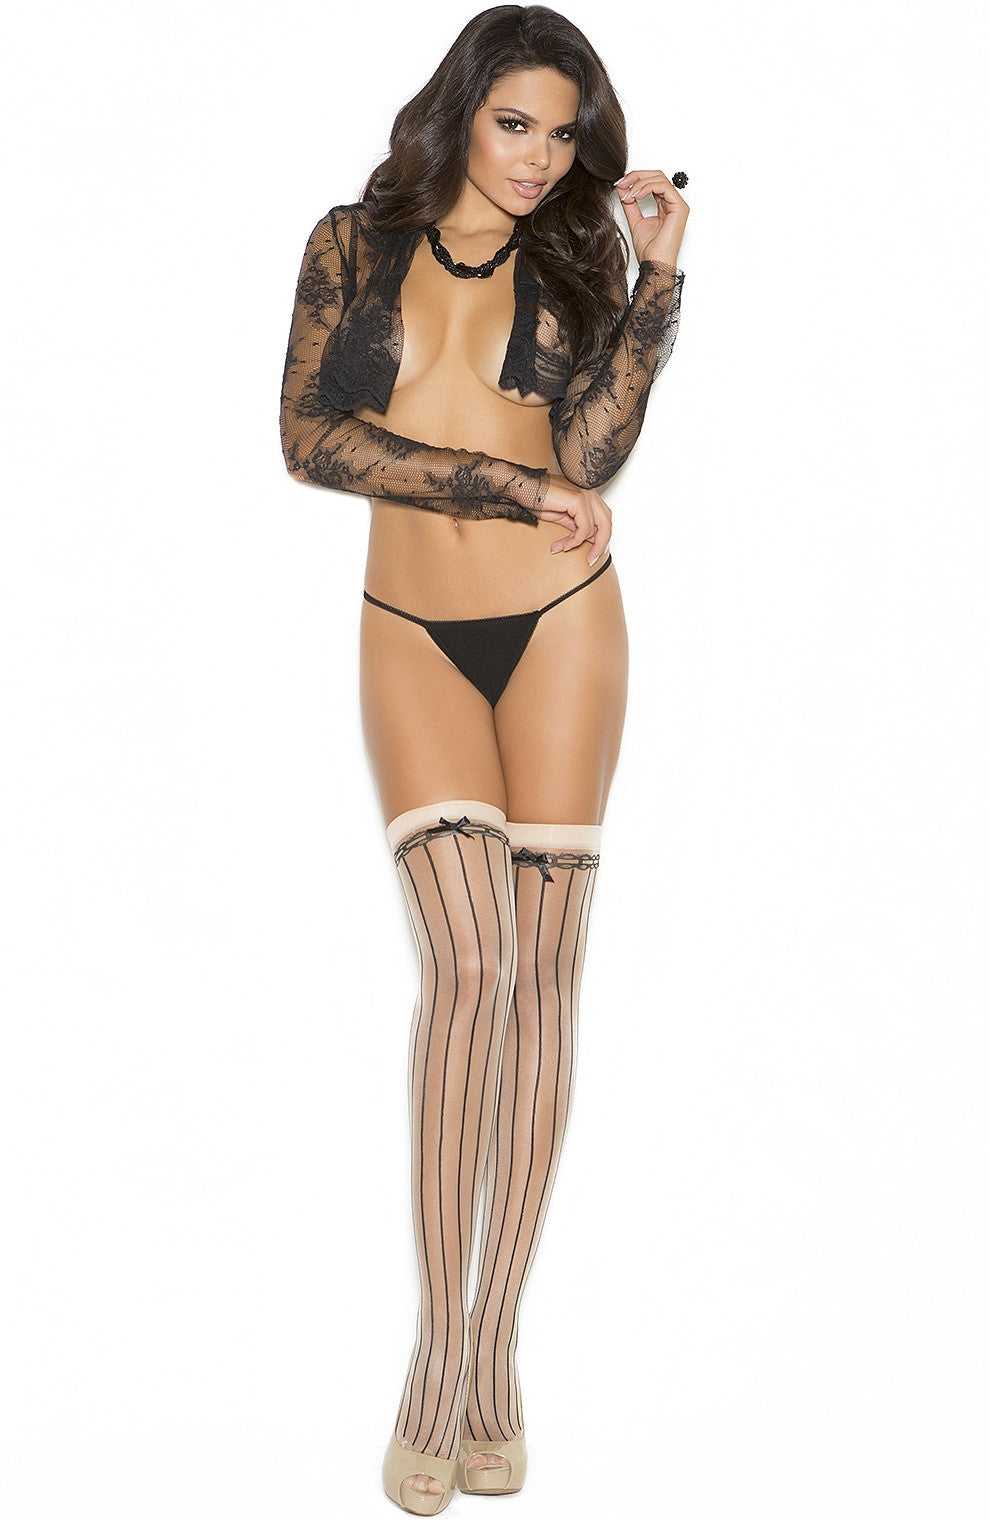 EM-1112 Pin striped Nude/Black stockings - Sexylingerieland